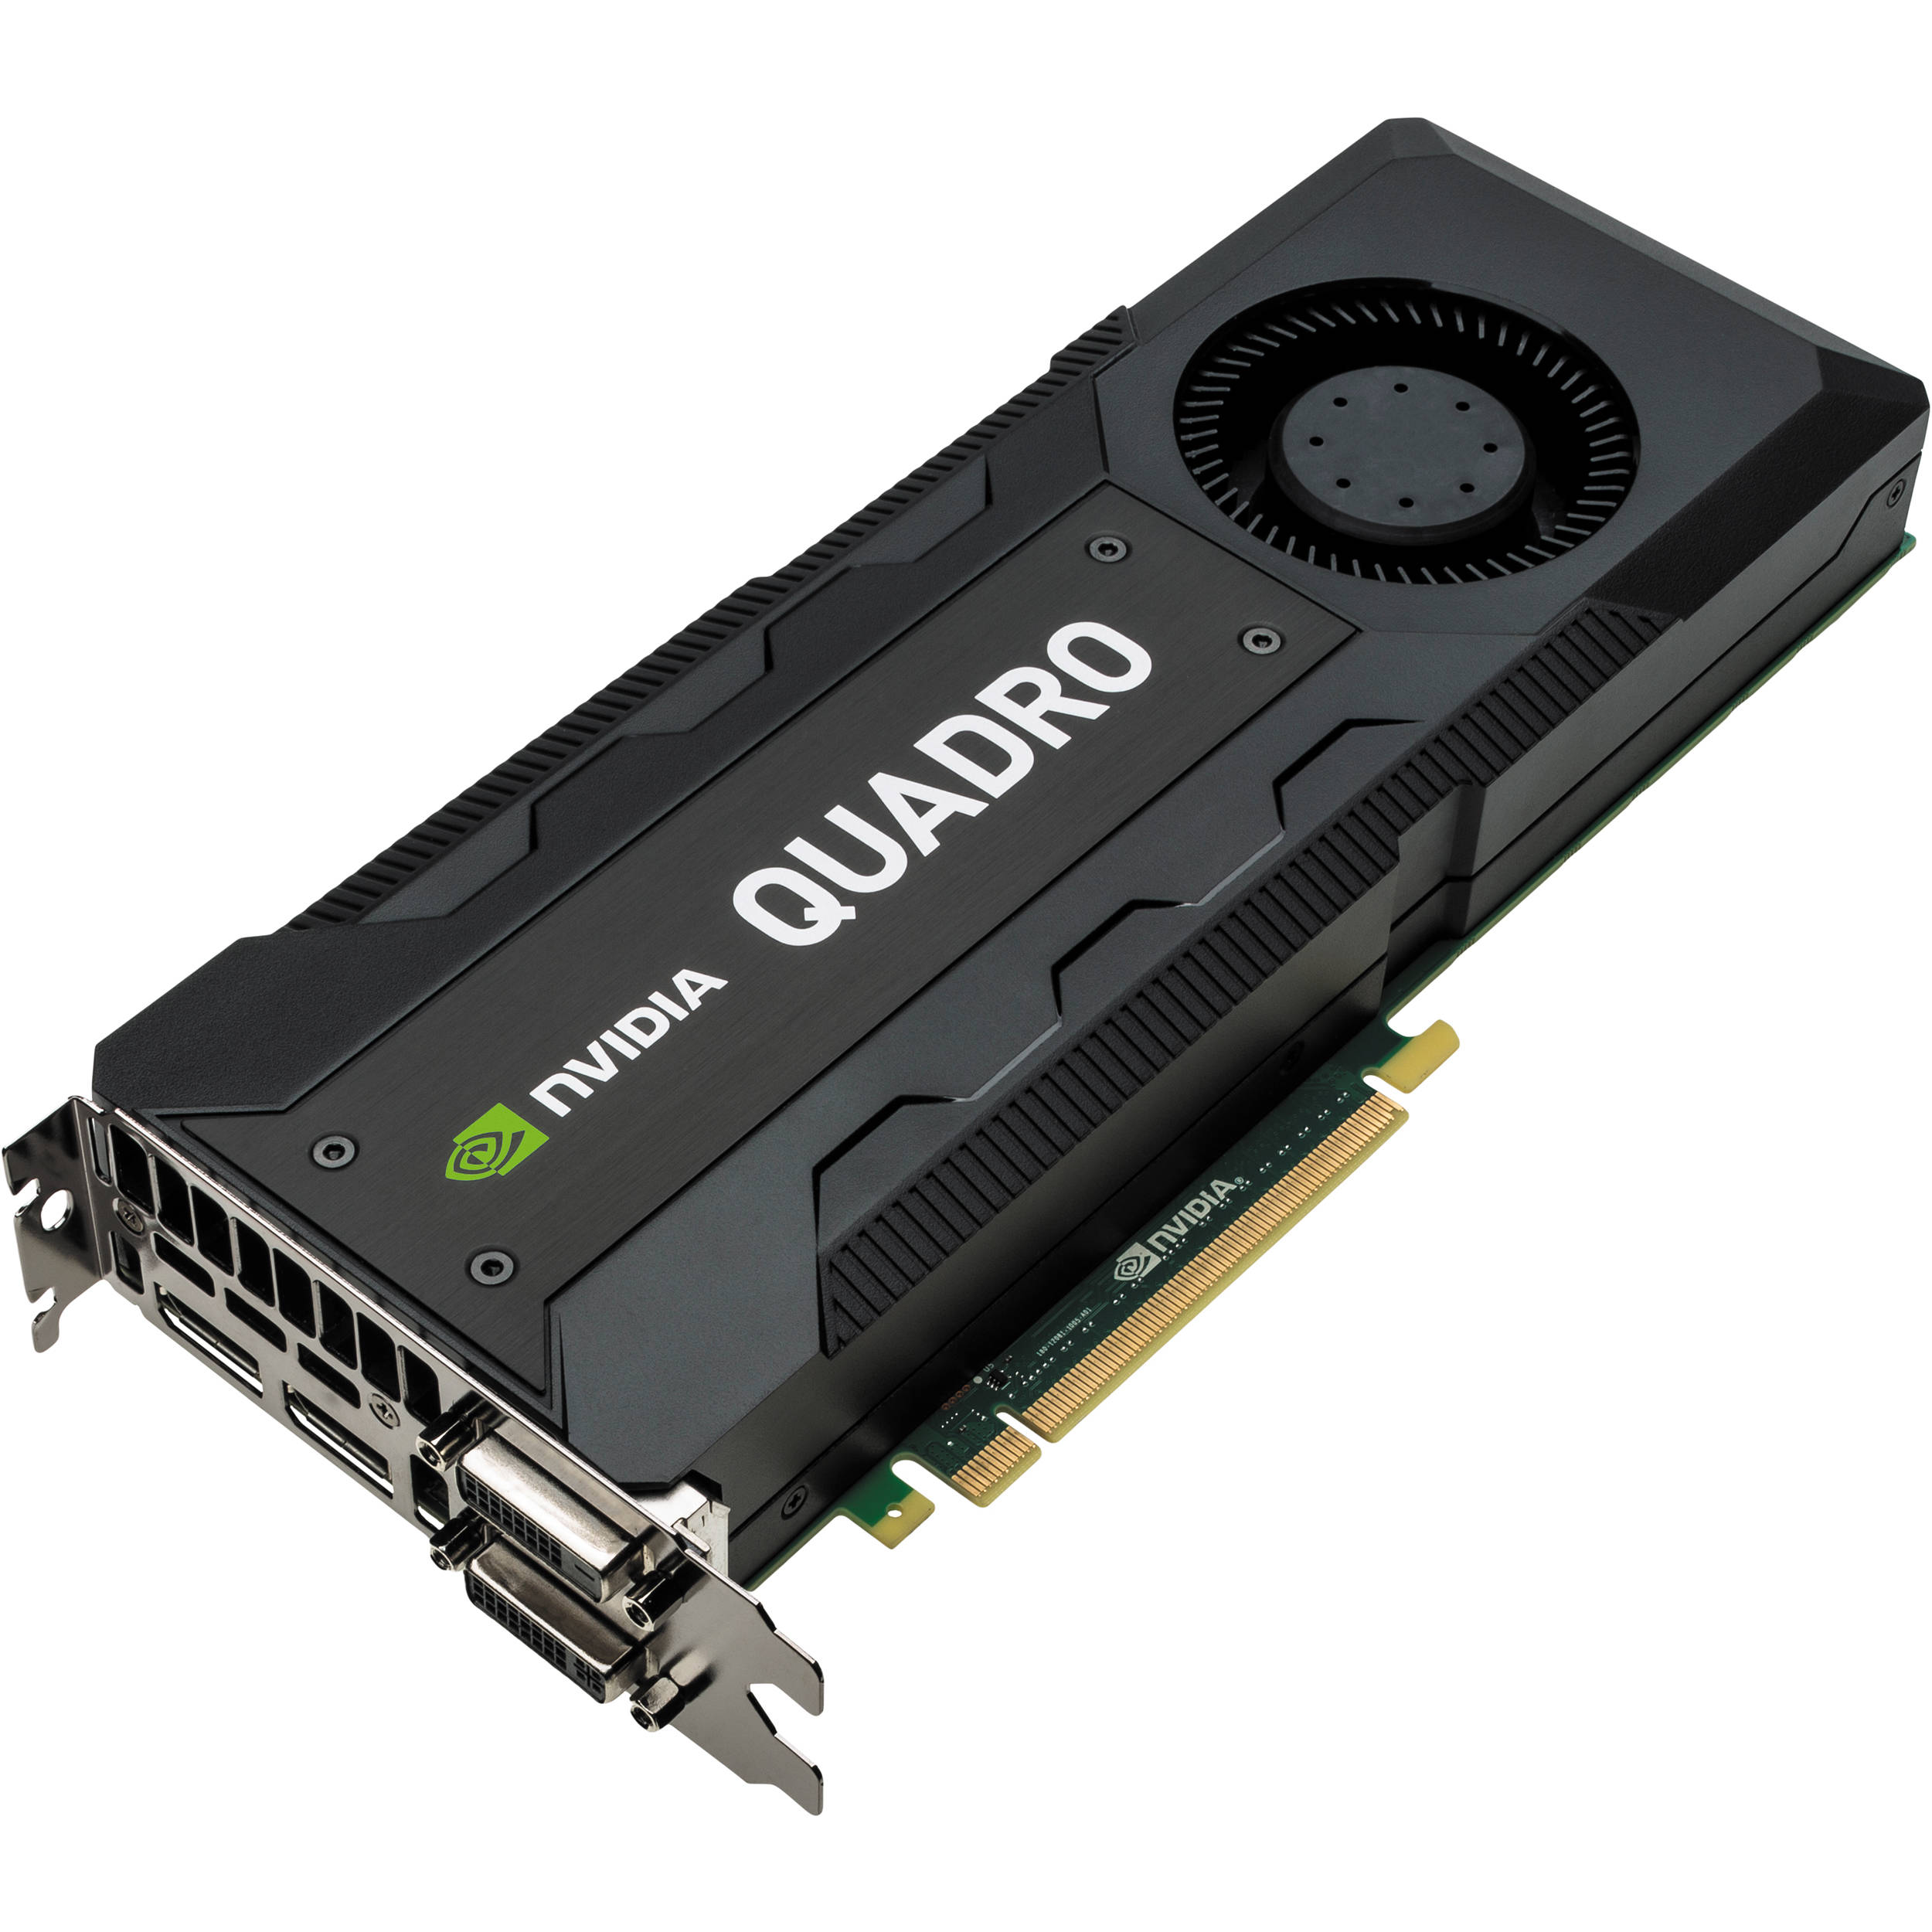 HP NVIDIA Quadro K5 Professional Graphics Card (Promo)